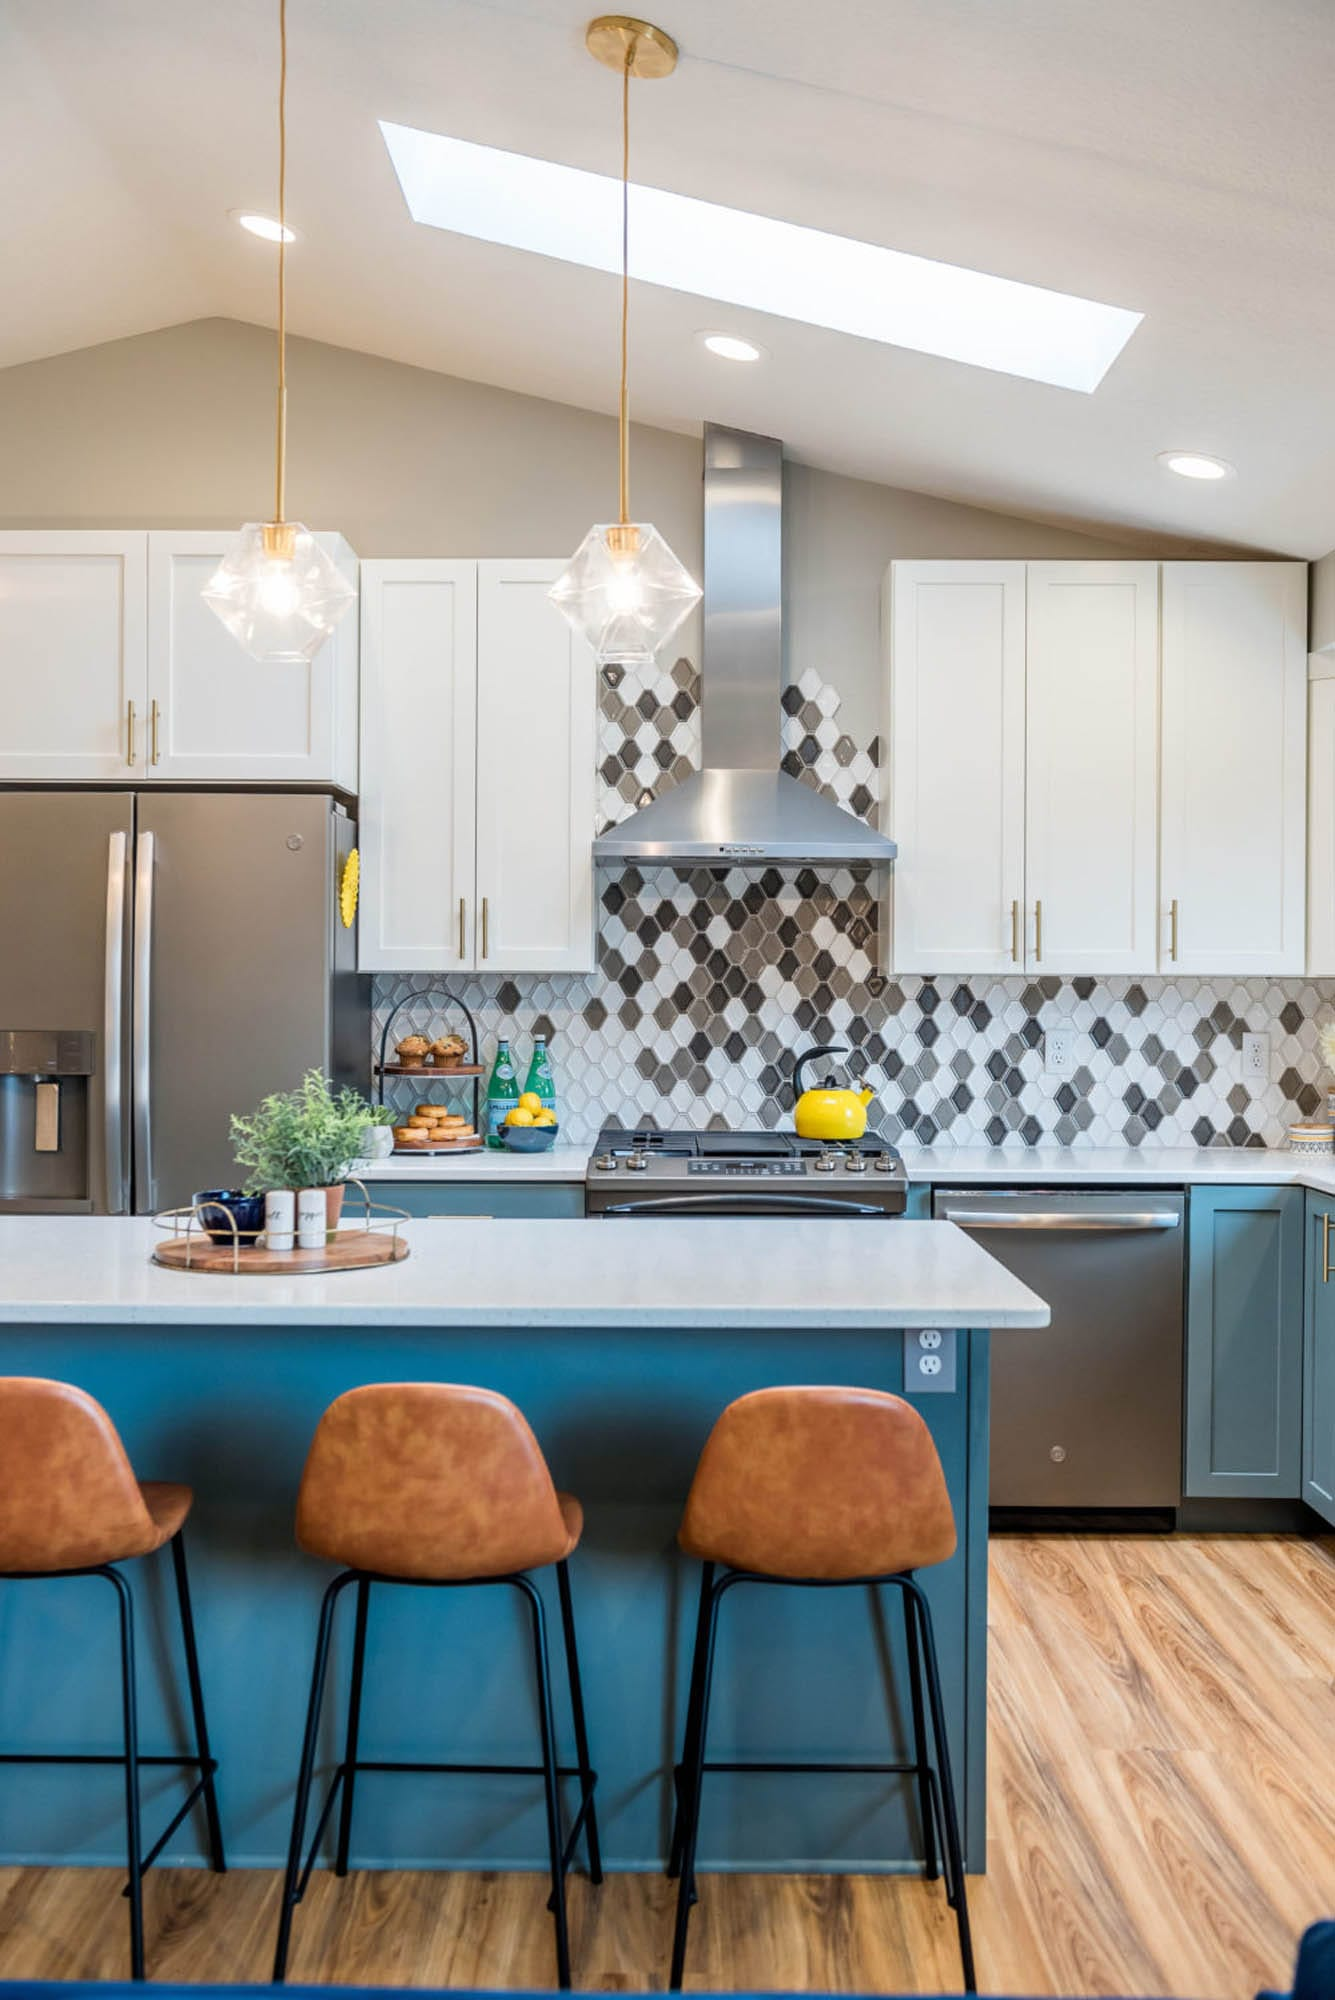 Blue cabinets and tile mosaic